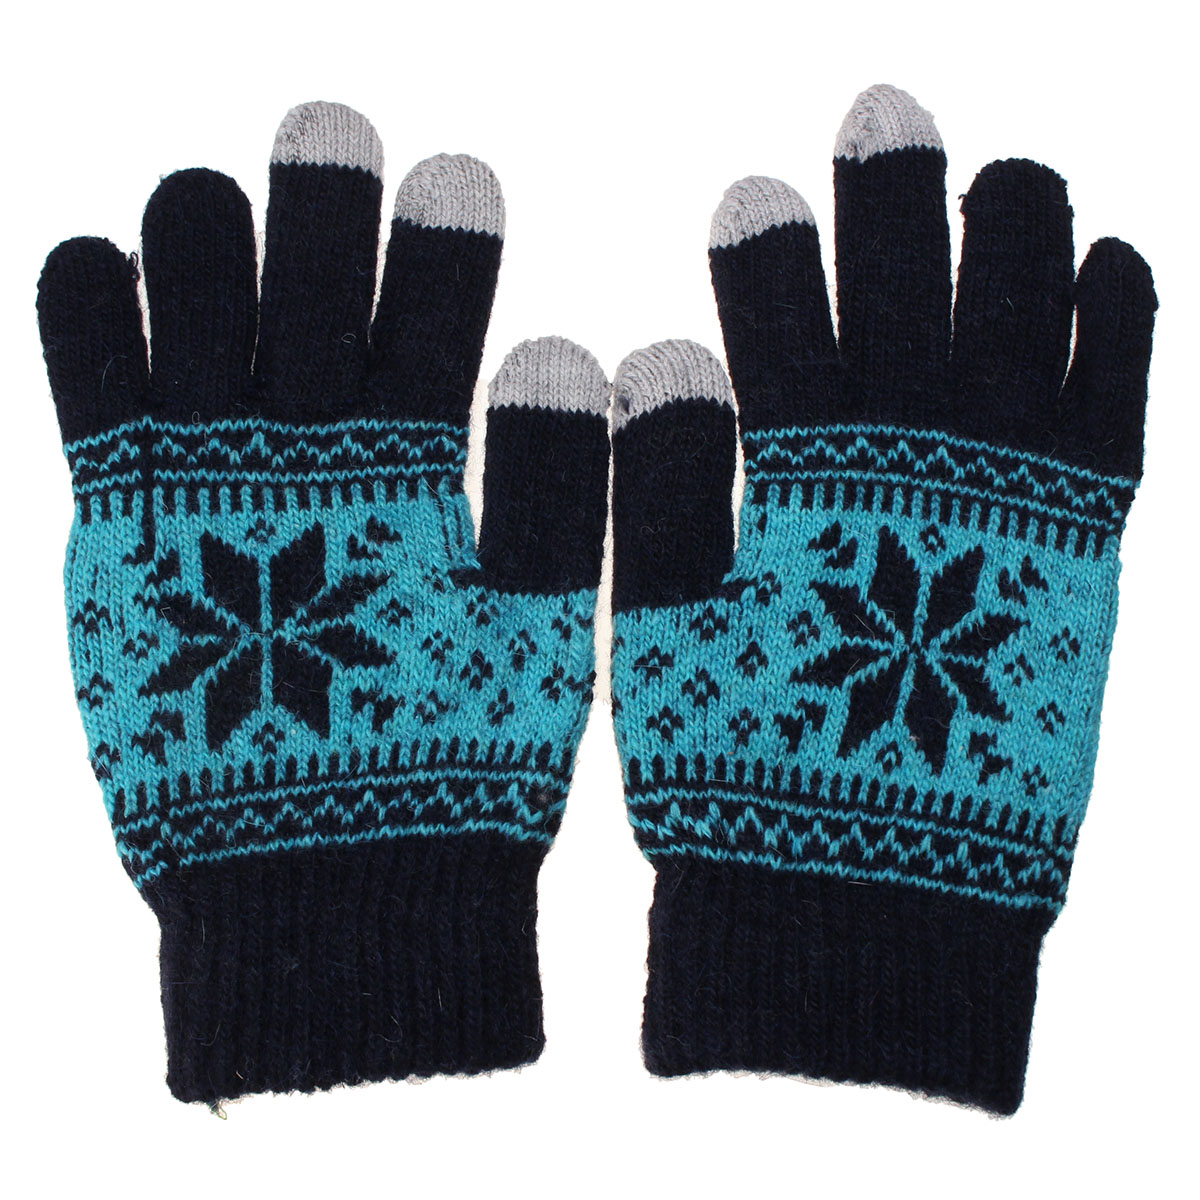 Unisex Men Women Knitted Snowflake Smartphone Touch Screen Gloves Full Finger Mittens